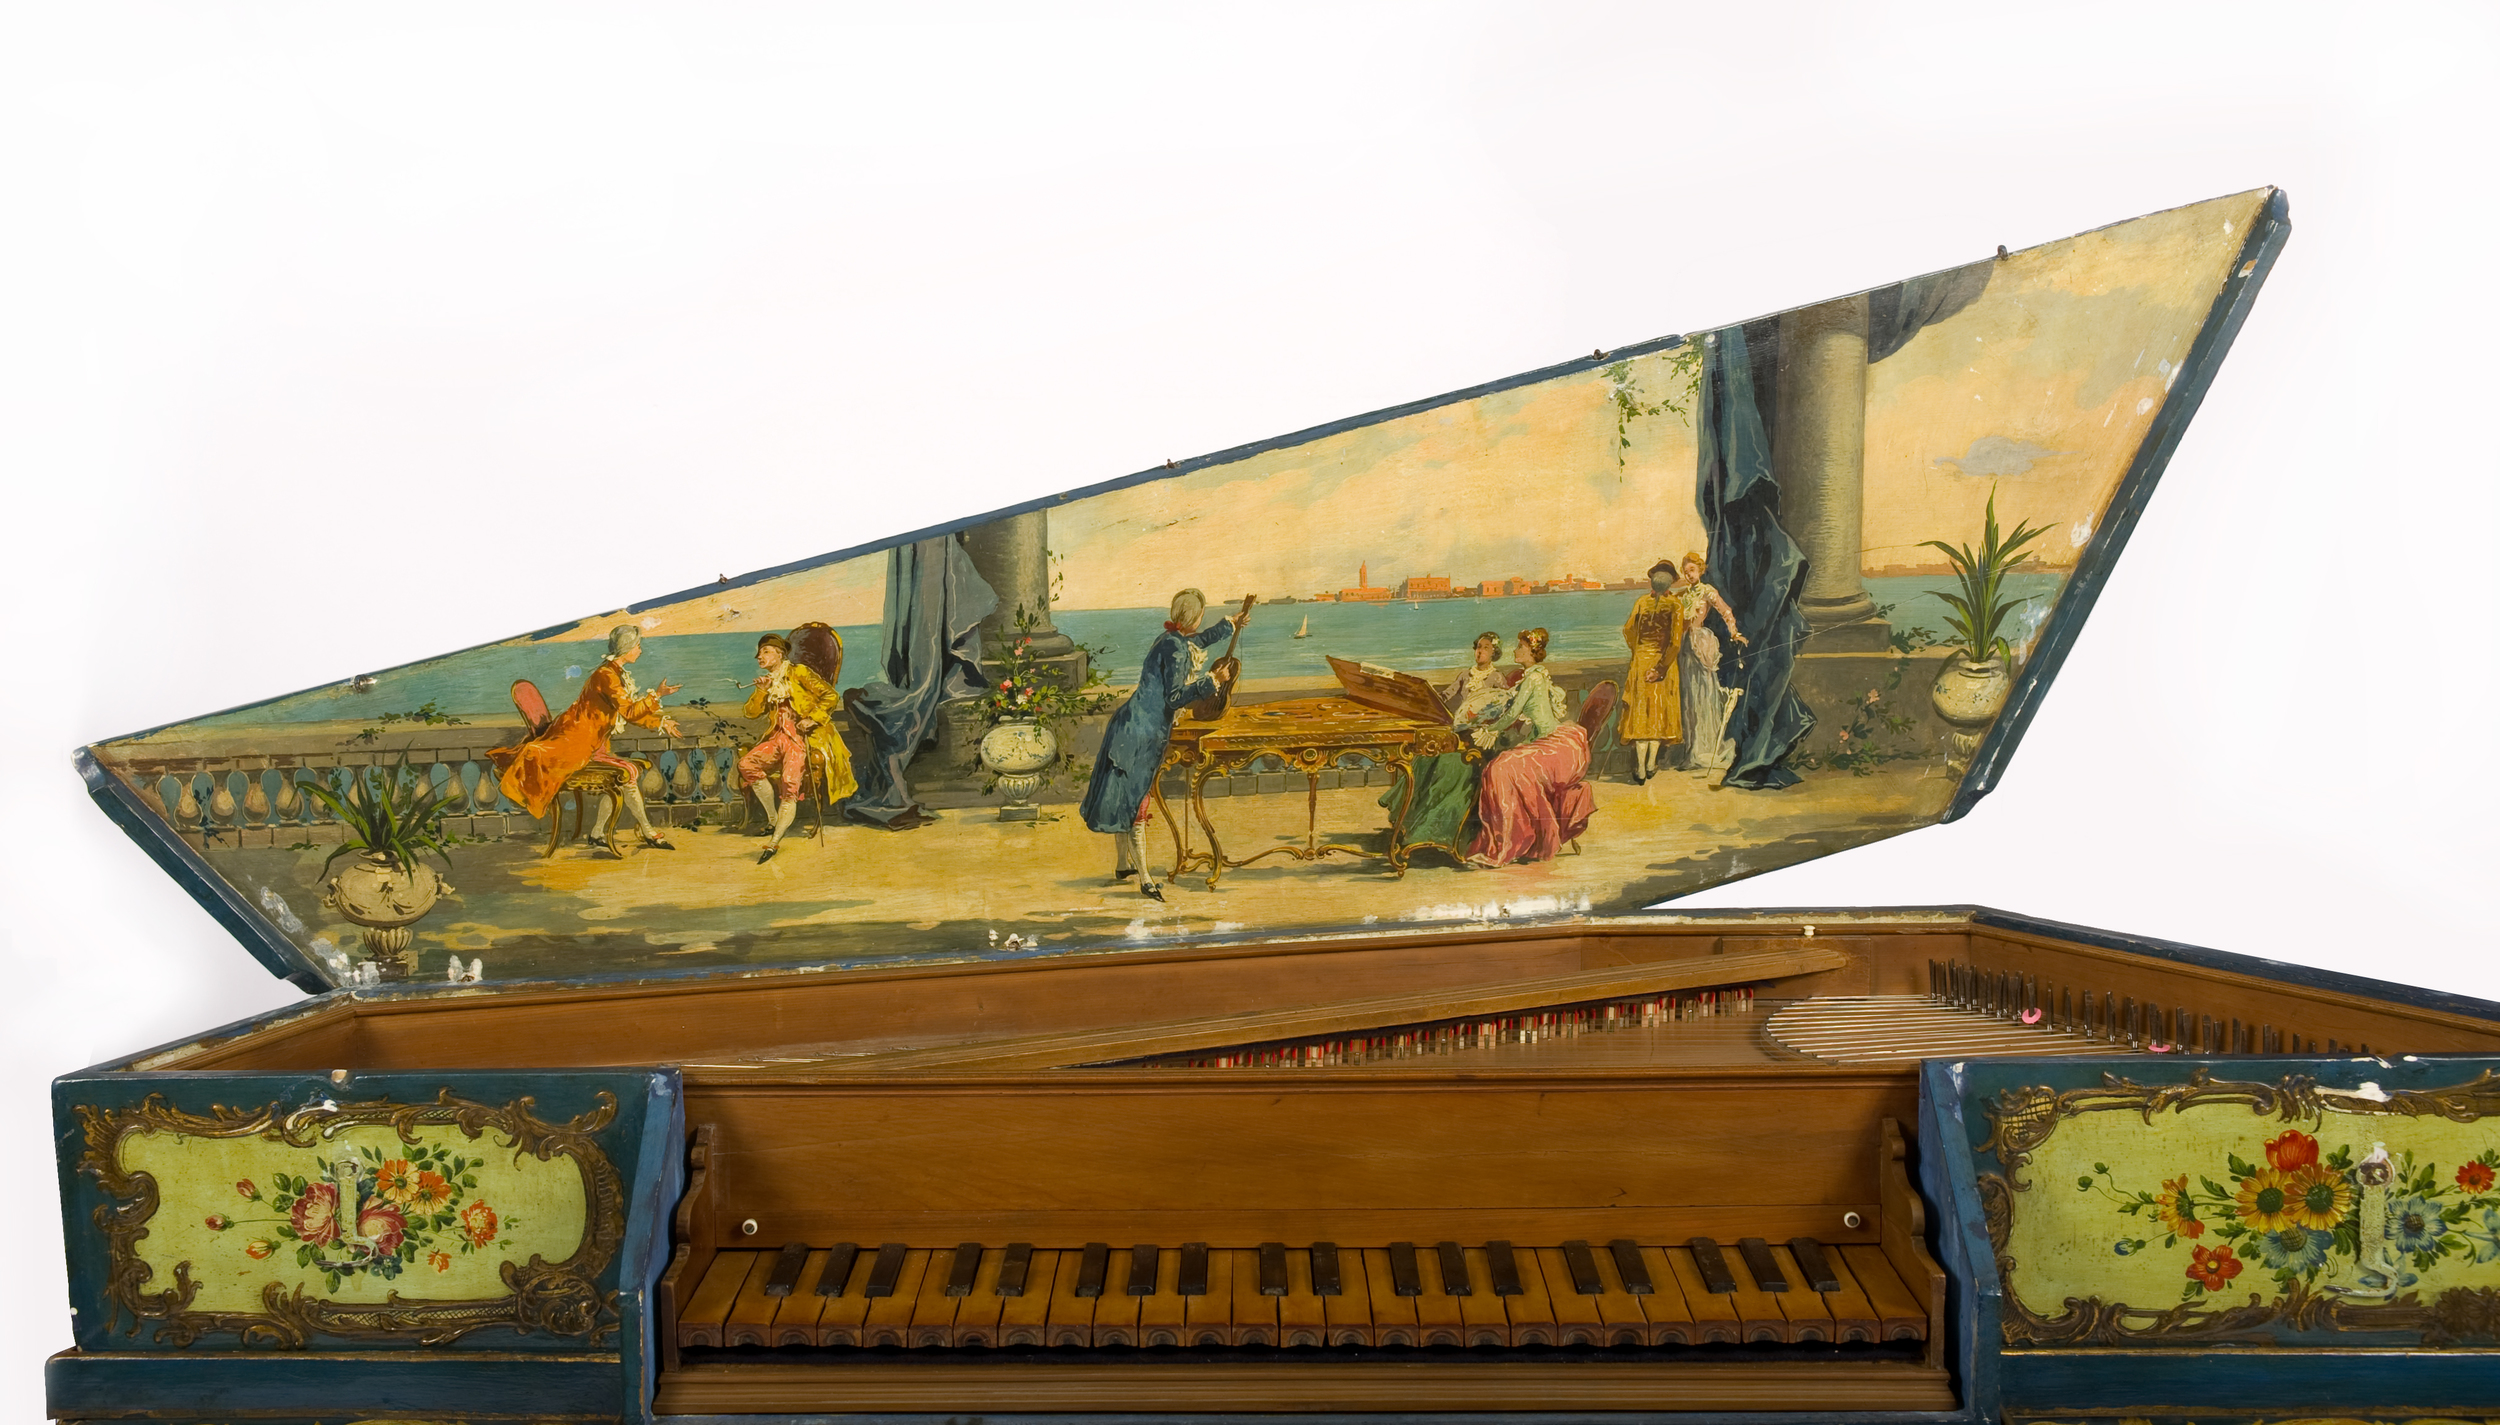 A 1560 AD Virginal from the National Music Centre's collection. Virginals are from the harpsichord family and were popular in Europe  the late Renaissance early Baroque period. (photo credit: National Music Centre)